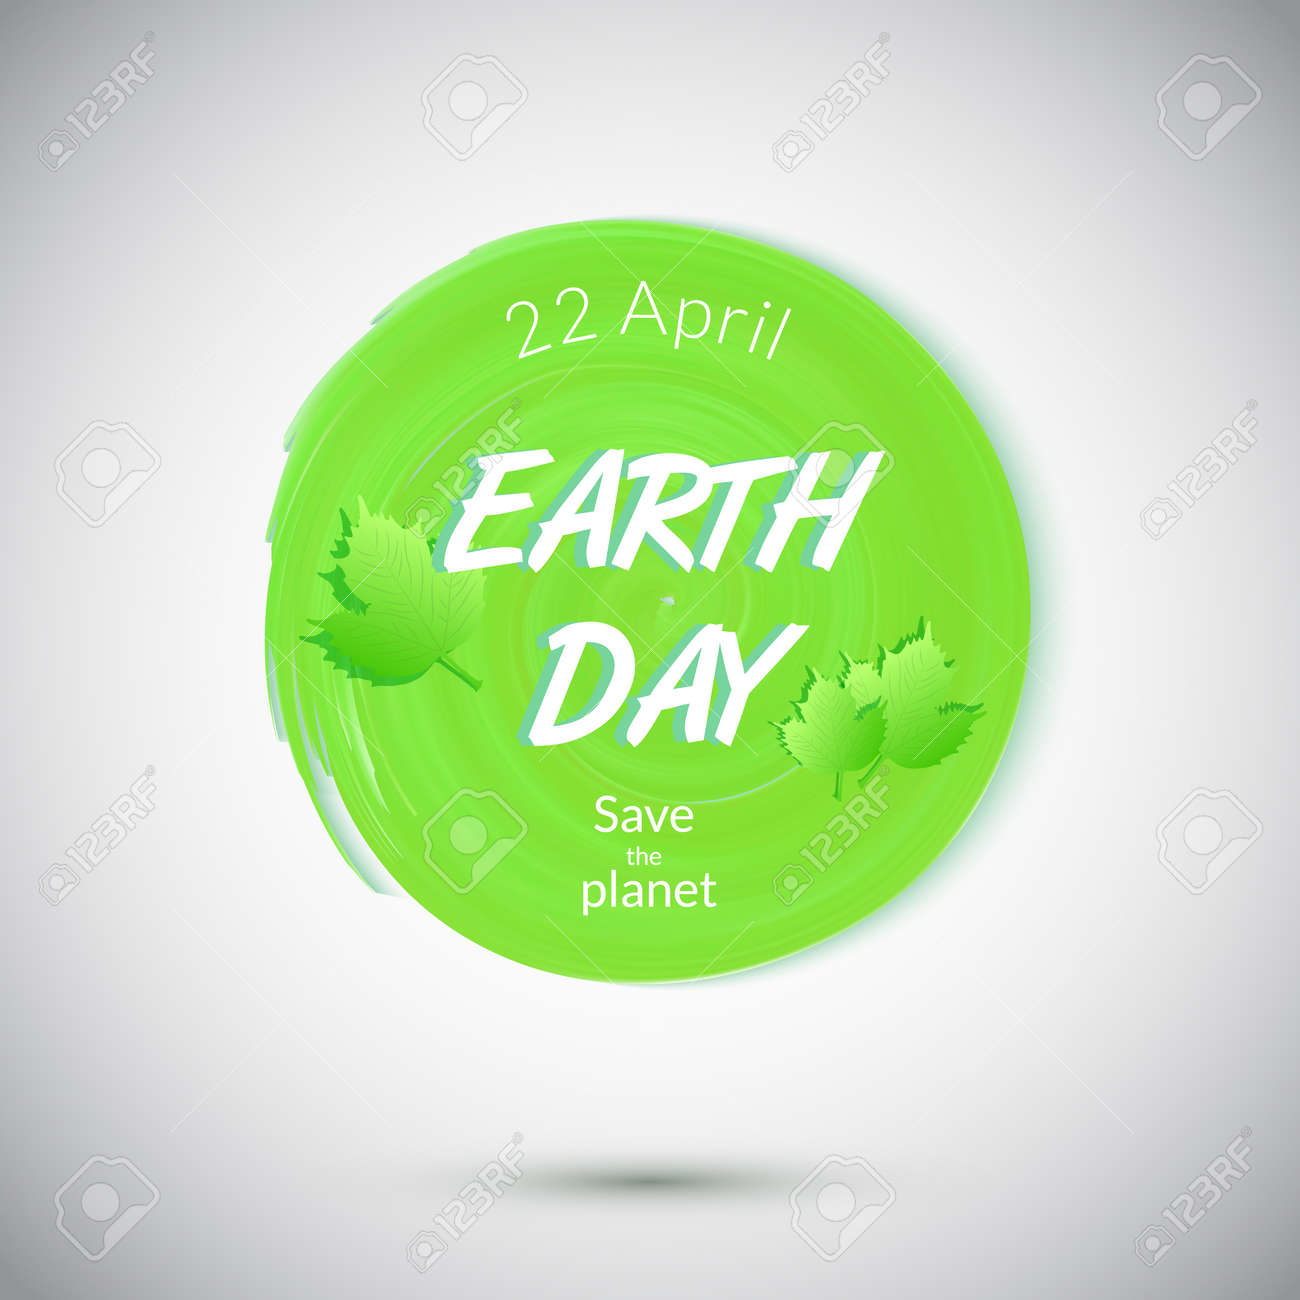 Earth day badge isolated green symbol of earth day royalty free earth day badge isolated green symbol of earth day stock vector 54945442 buycottarizona